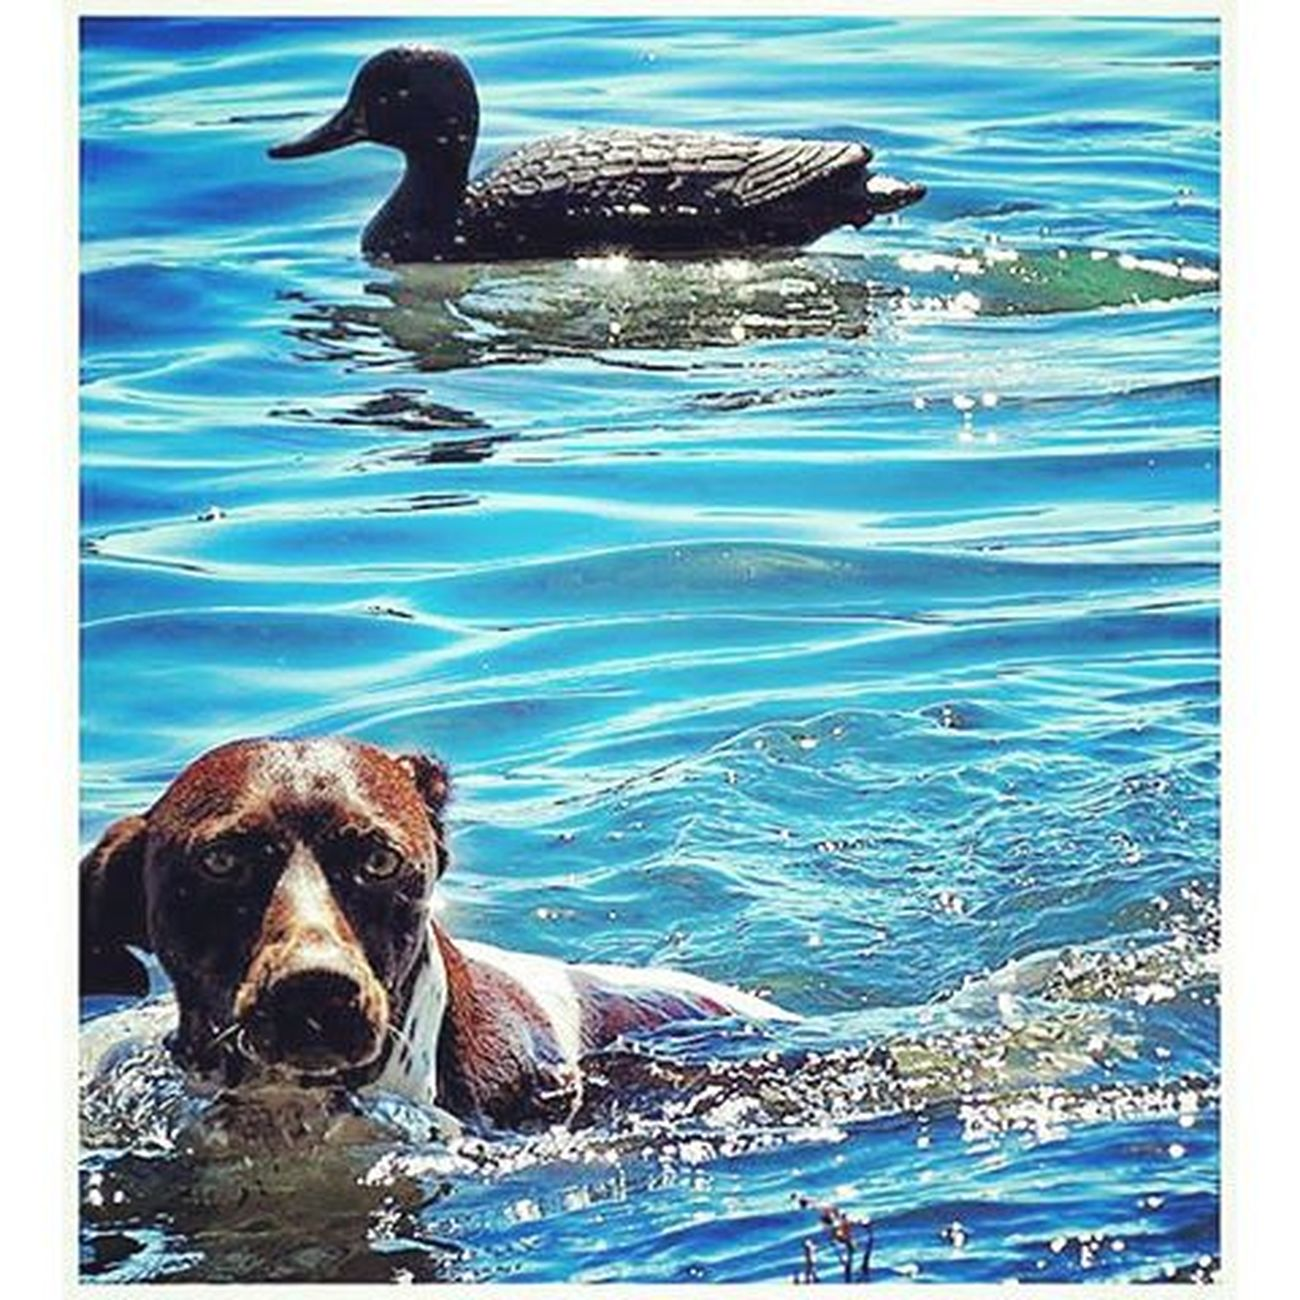 Birddogoftheday Birddogsofinstagram Birddog Fowl Water Fowl Simplistic Beauty Florida Life Duck Pond Nature Photography Hunting Dog Pookie  Gsp German Shorthaired Pointer Shotgun Dog Pointer Bestfriend Waterporn Water - Collection Water Reflections Photography In Motion